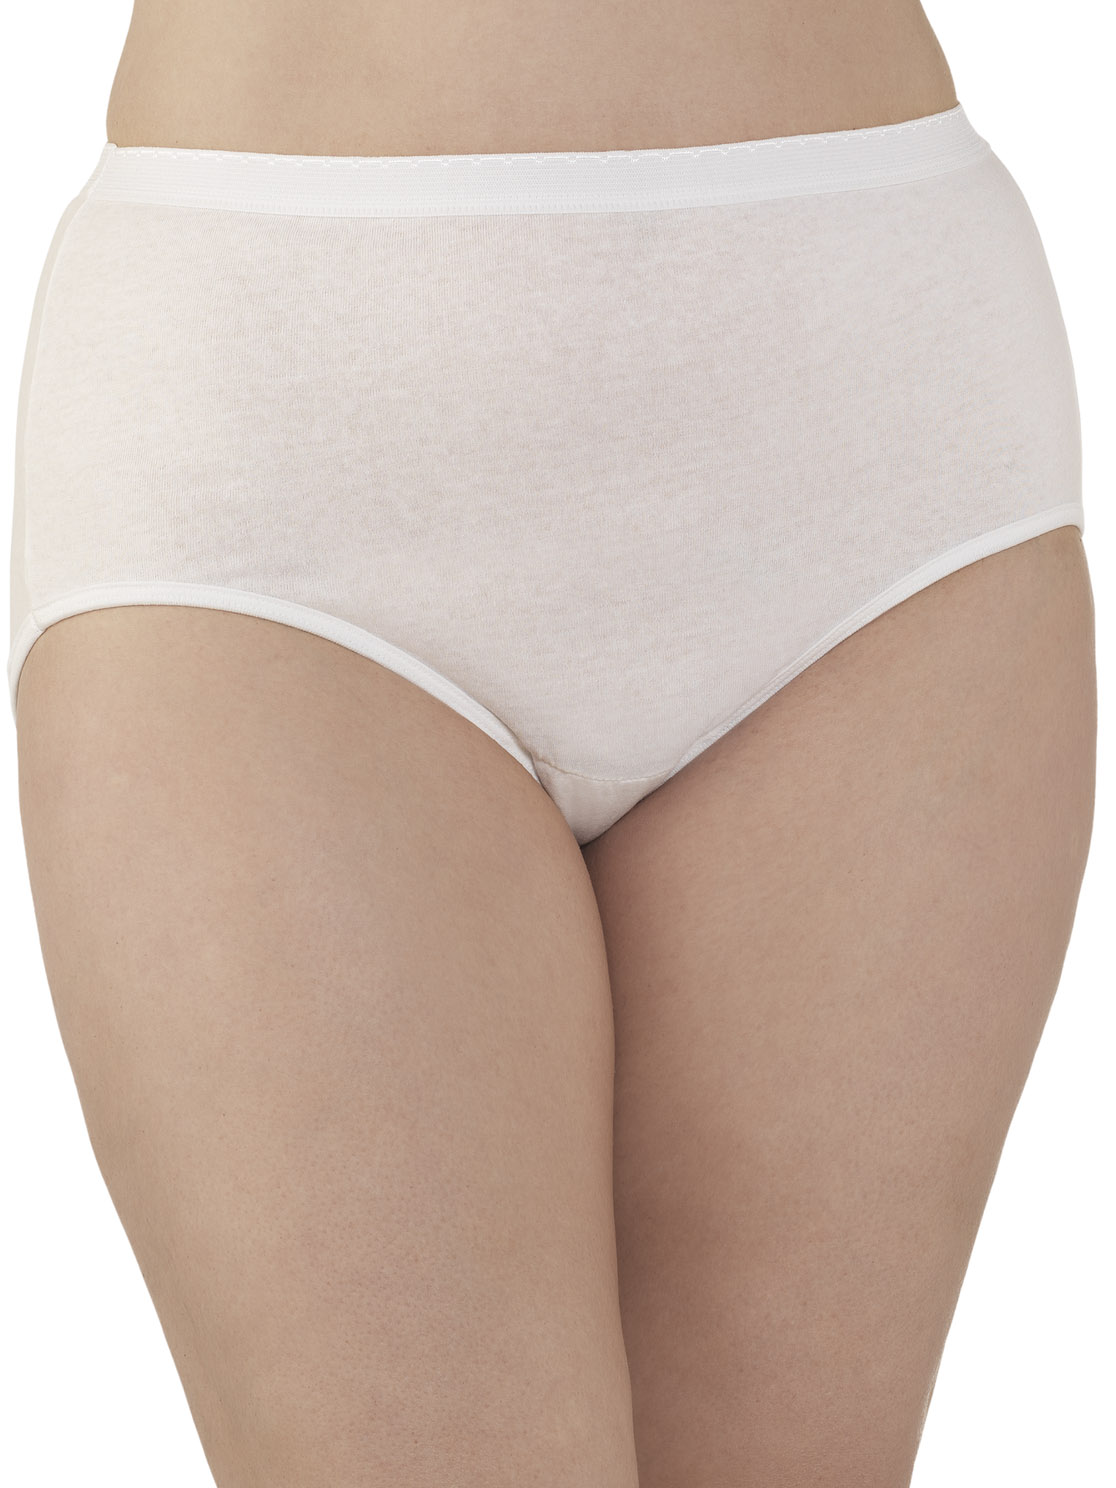 Fruit of the Loom Women's Fit For Me 3-Pack Brief - Plus Size - White - 9